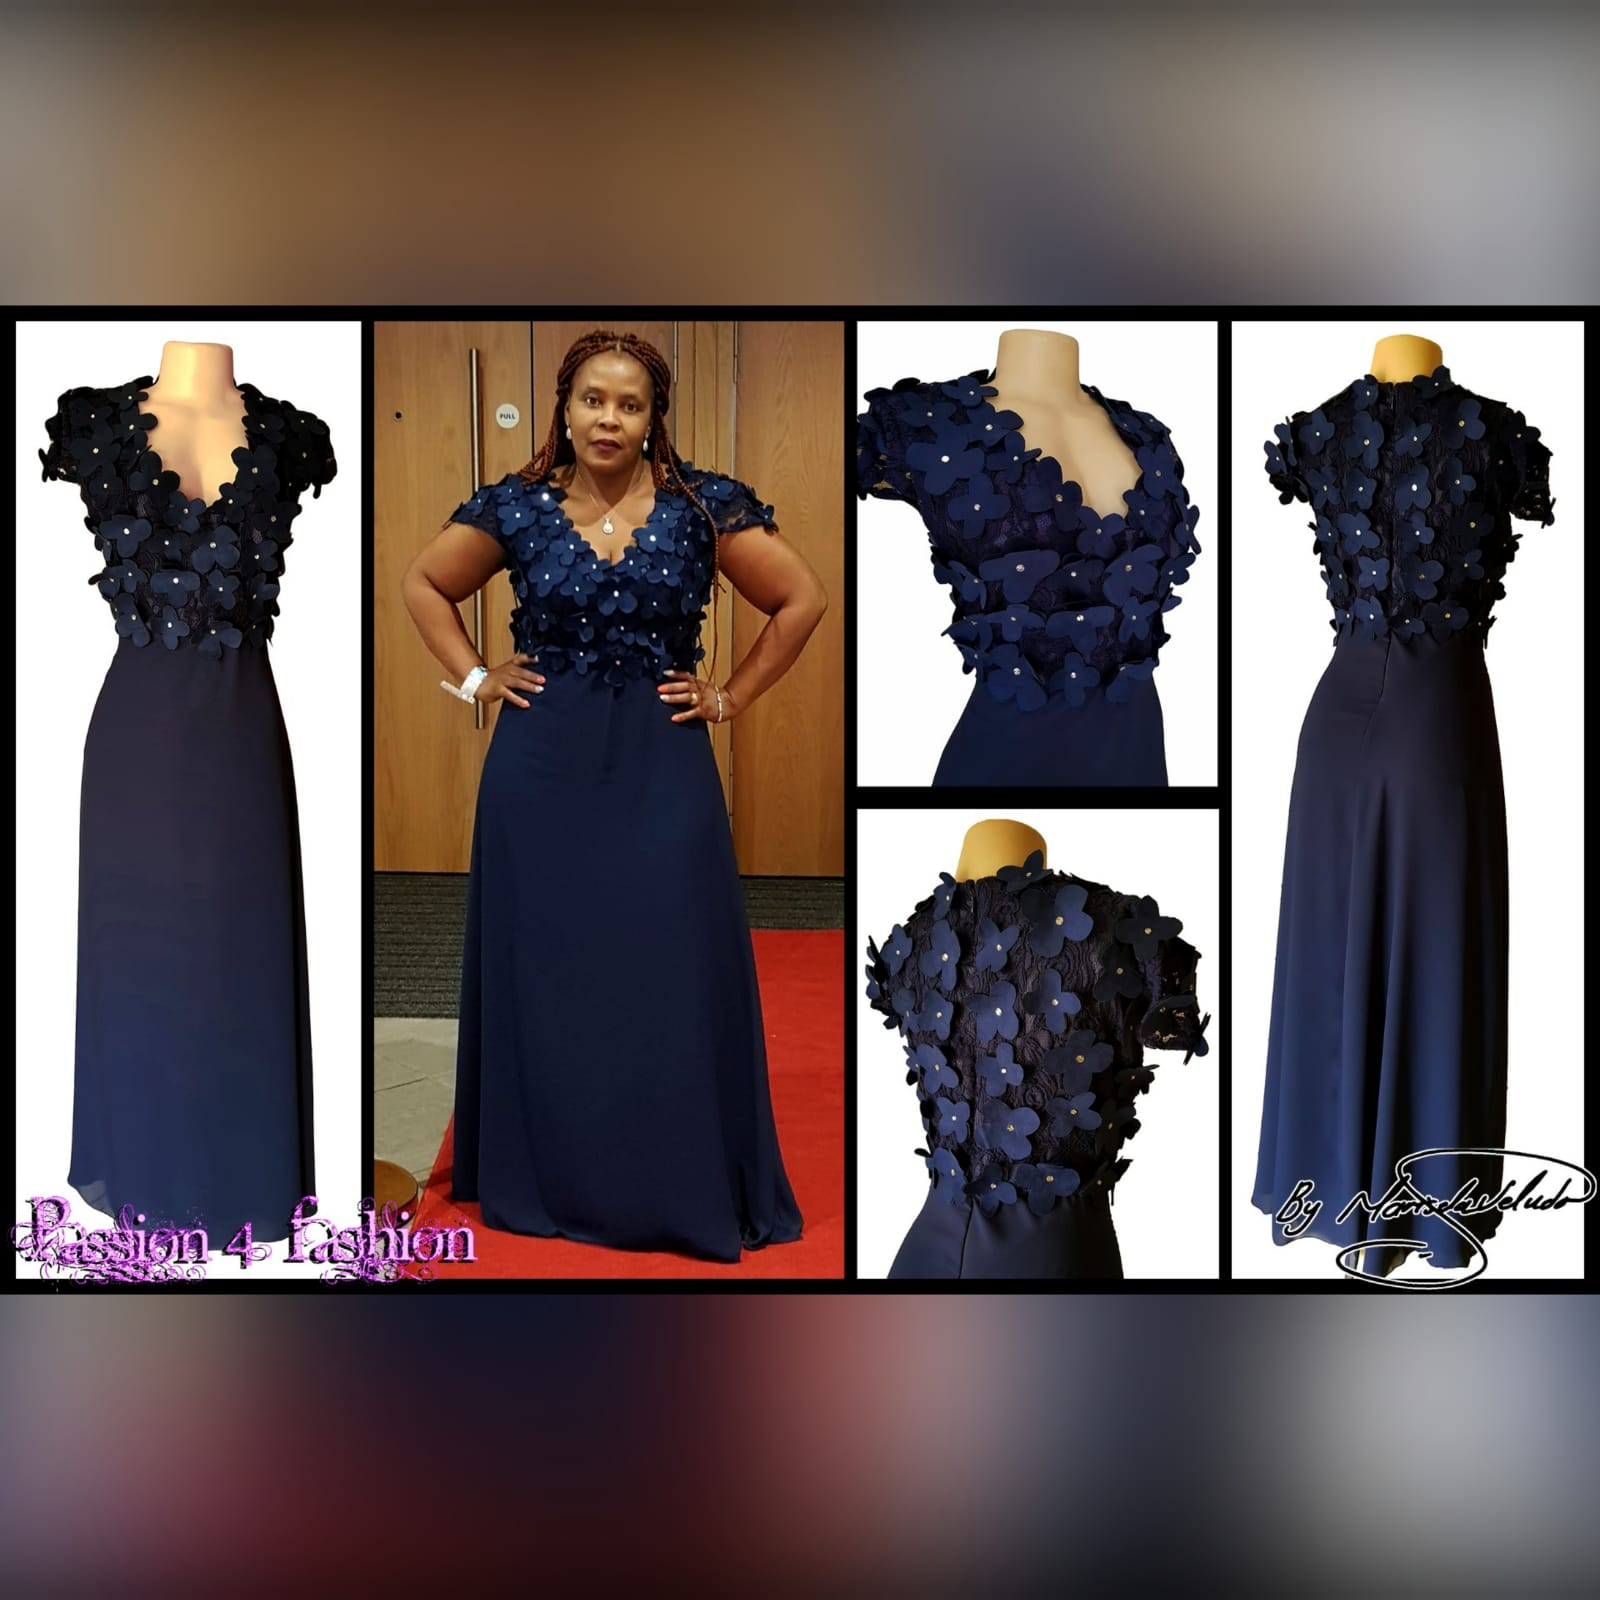 Navy blue long evening dress bodice 6 navy blue long evening dress bodice in lace with 3d suede flowers, detailed with silver beads.